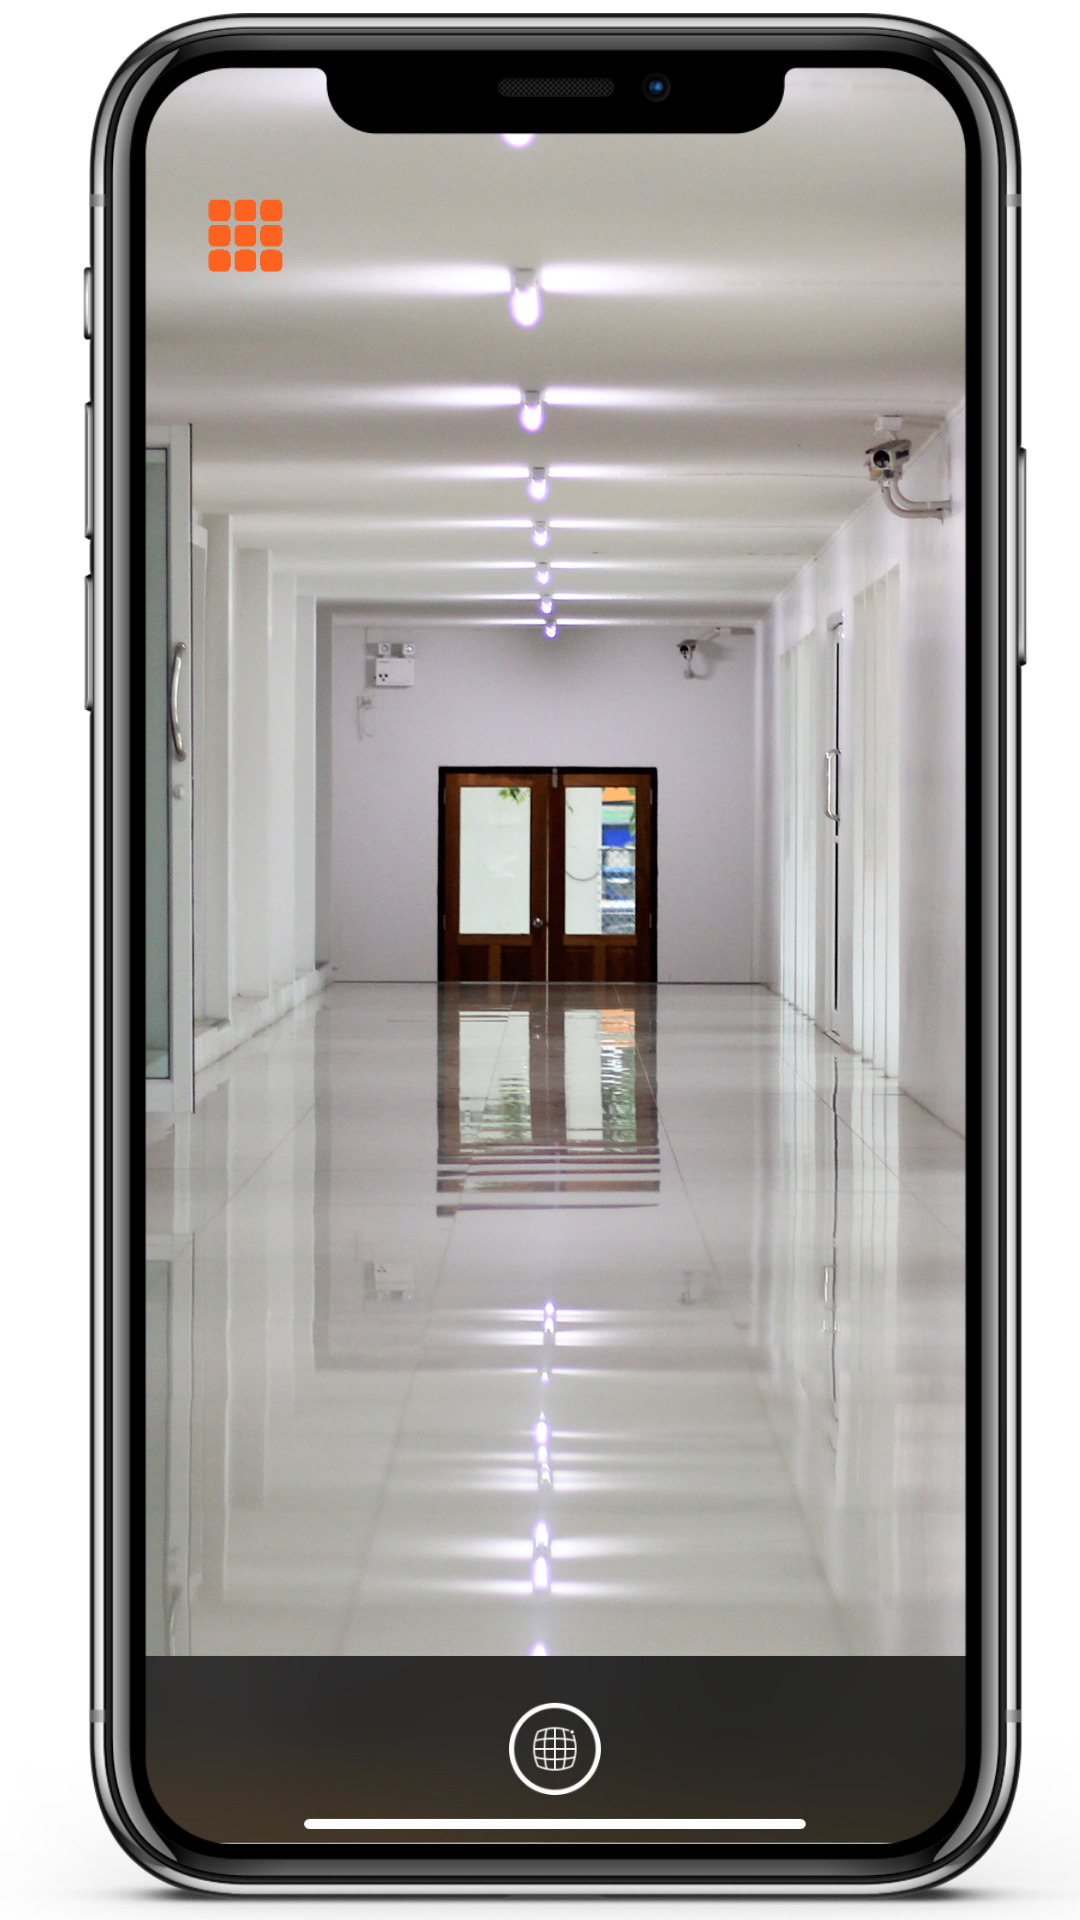 A phone mockup with a screenshot showing Super Lidar seeing an empty corridor detecting it as open space.